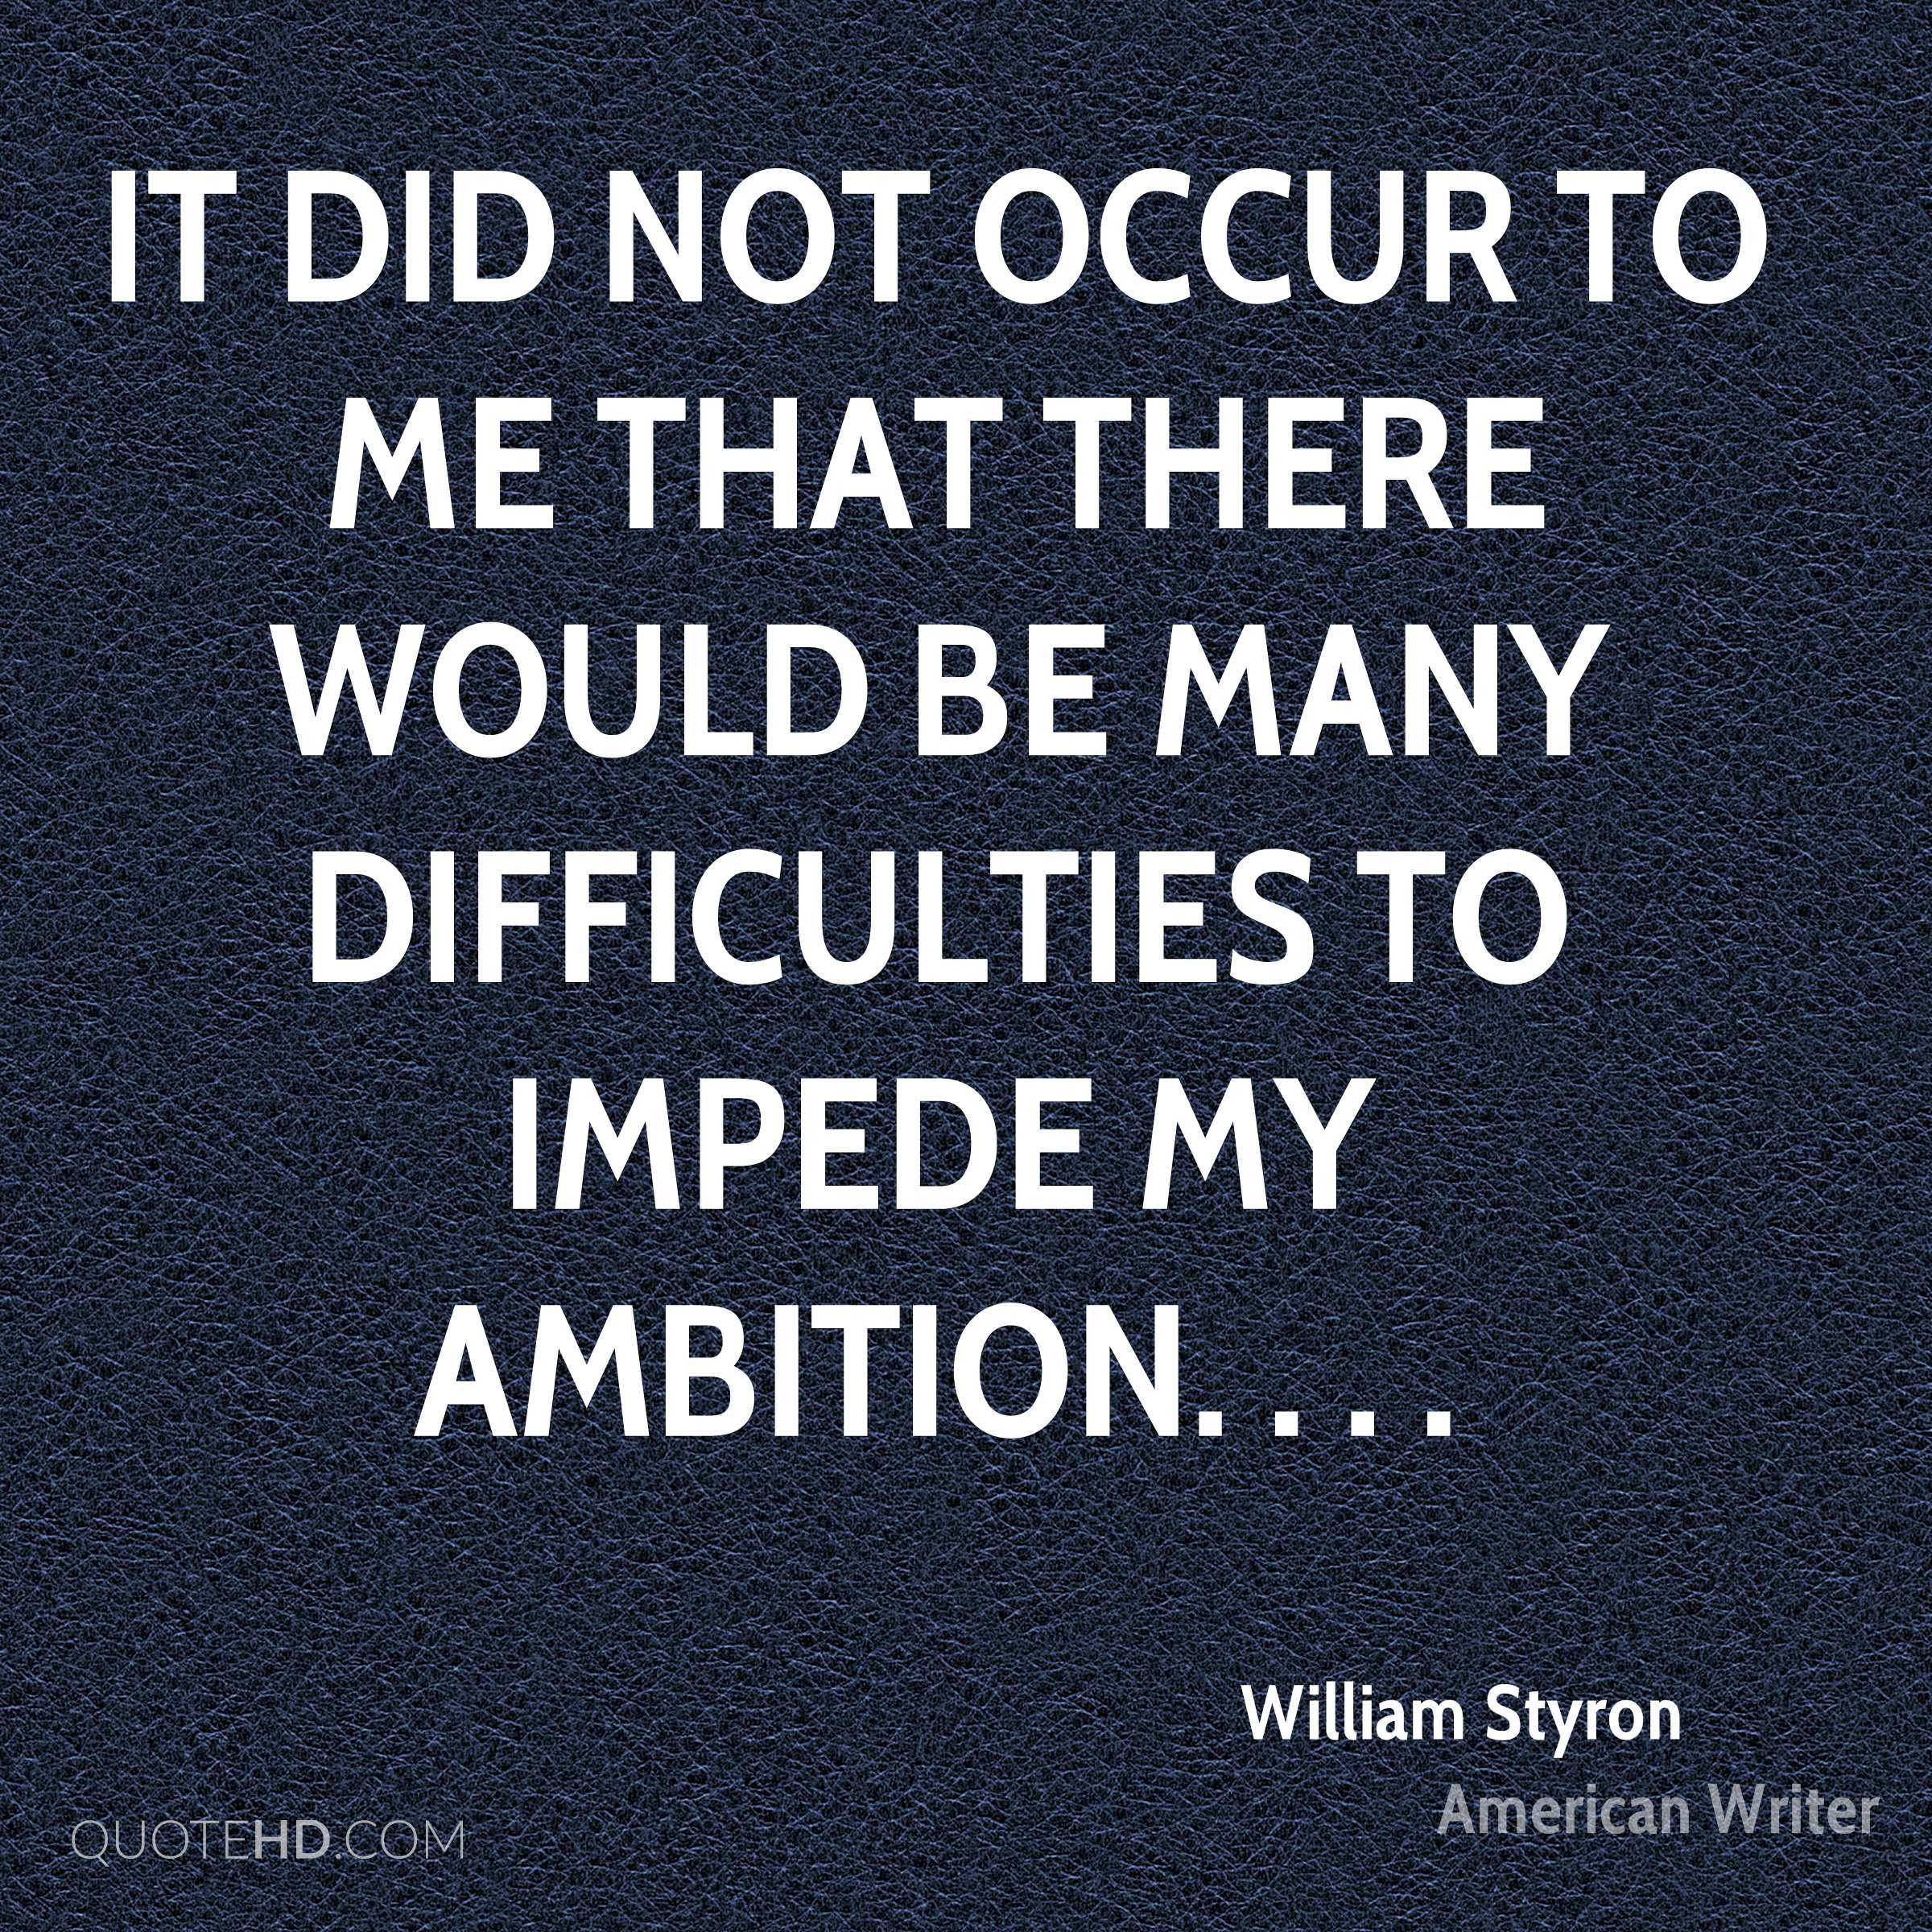 It did not occur to me that there would be many difficulties to impede my ambition. . . .